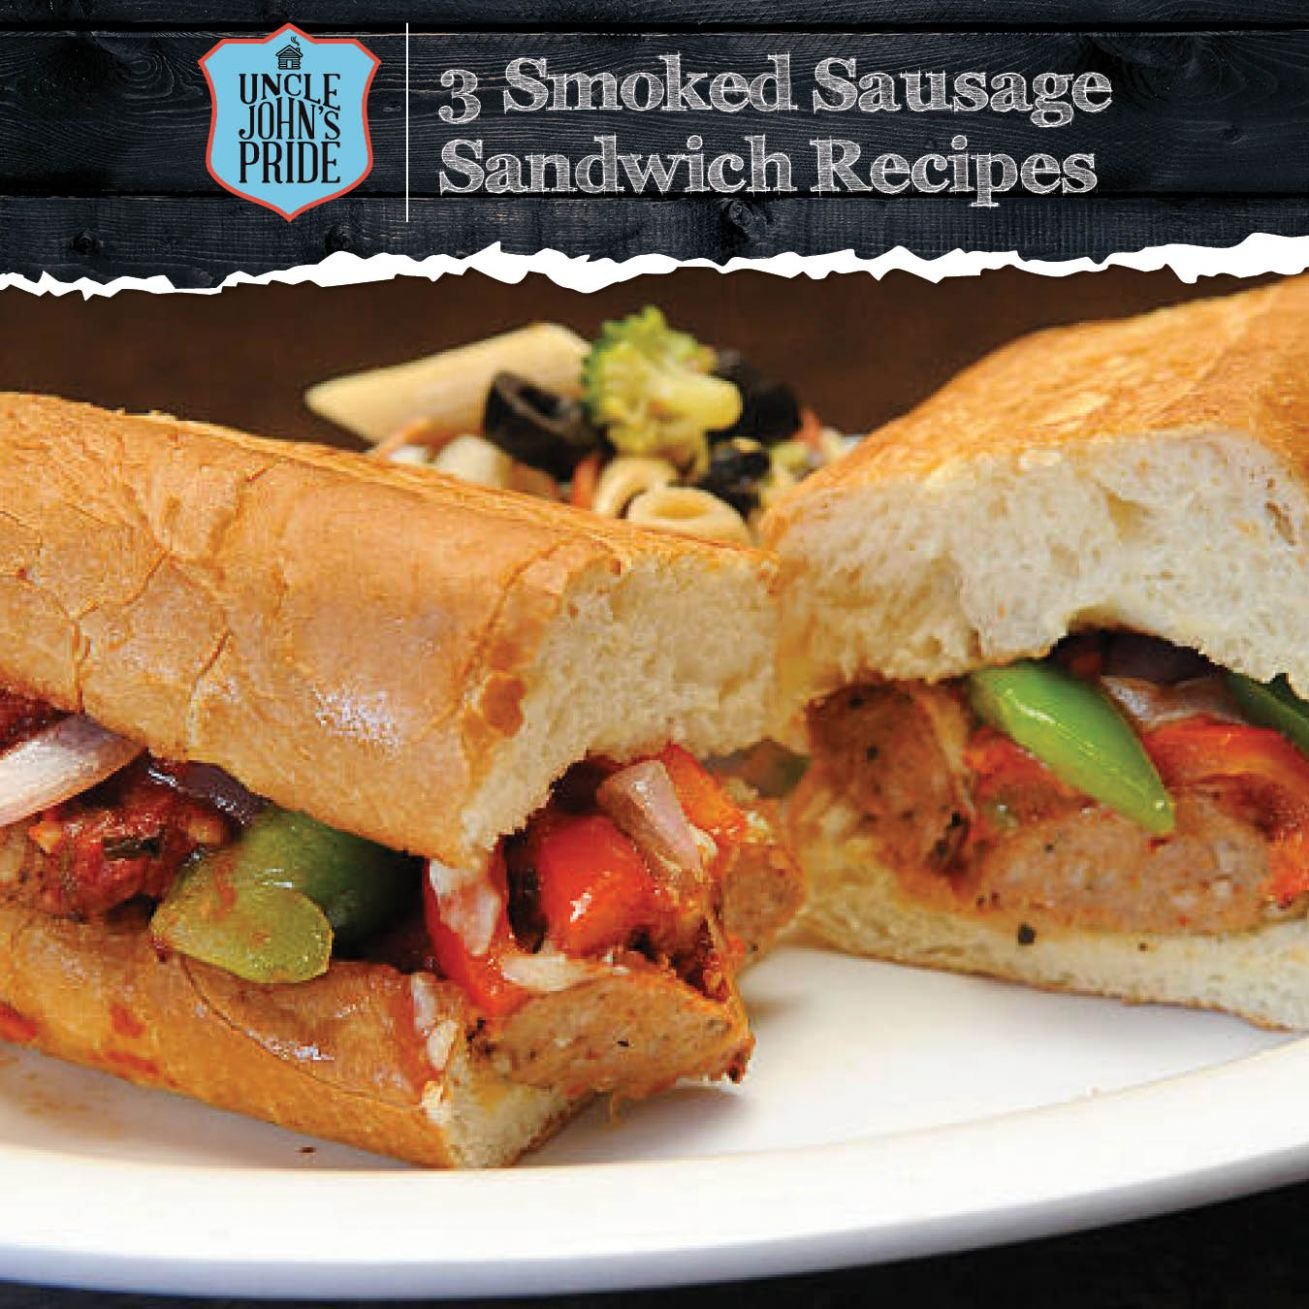 11 Recipes For Smoked Sausage Sandwiches - Uncle Johns Pride